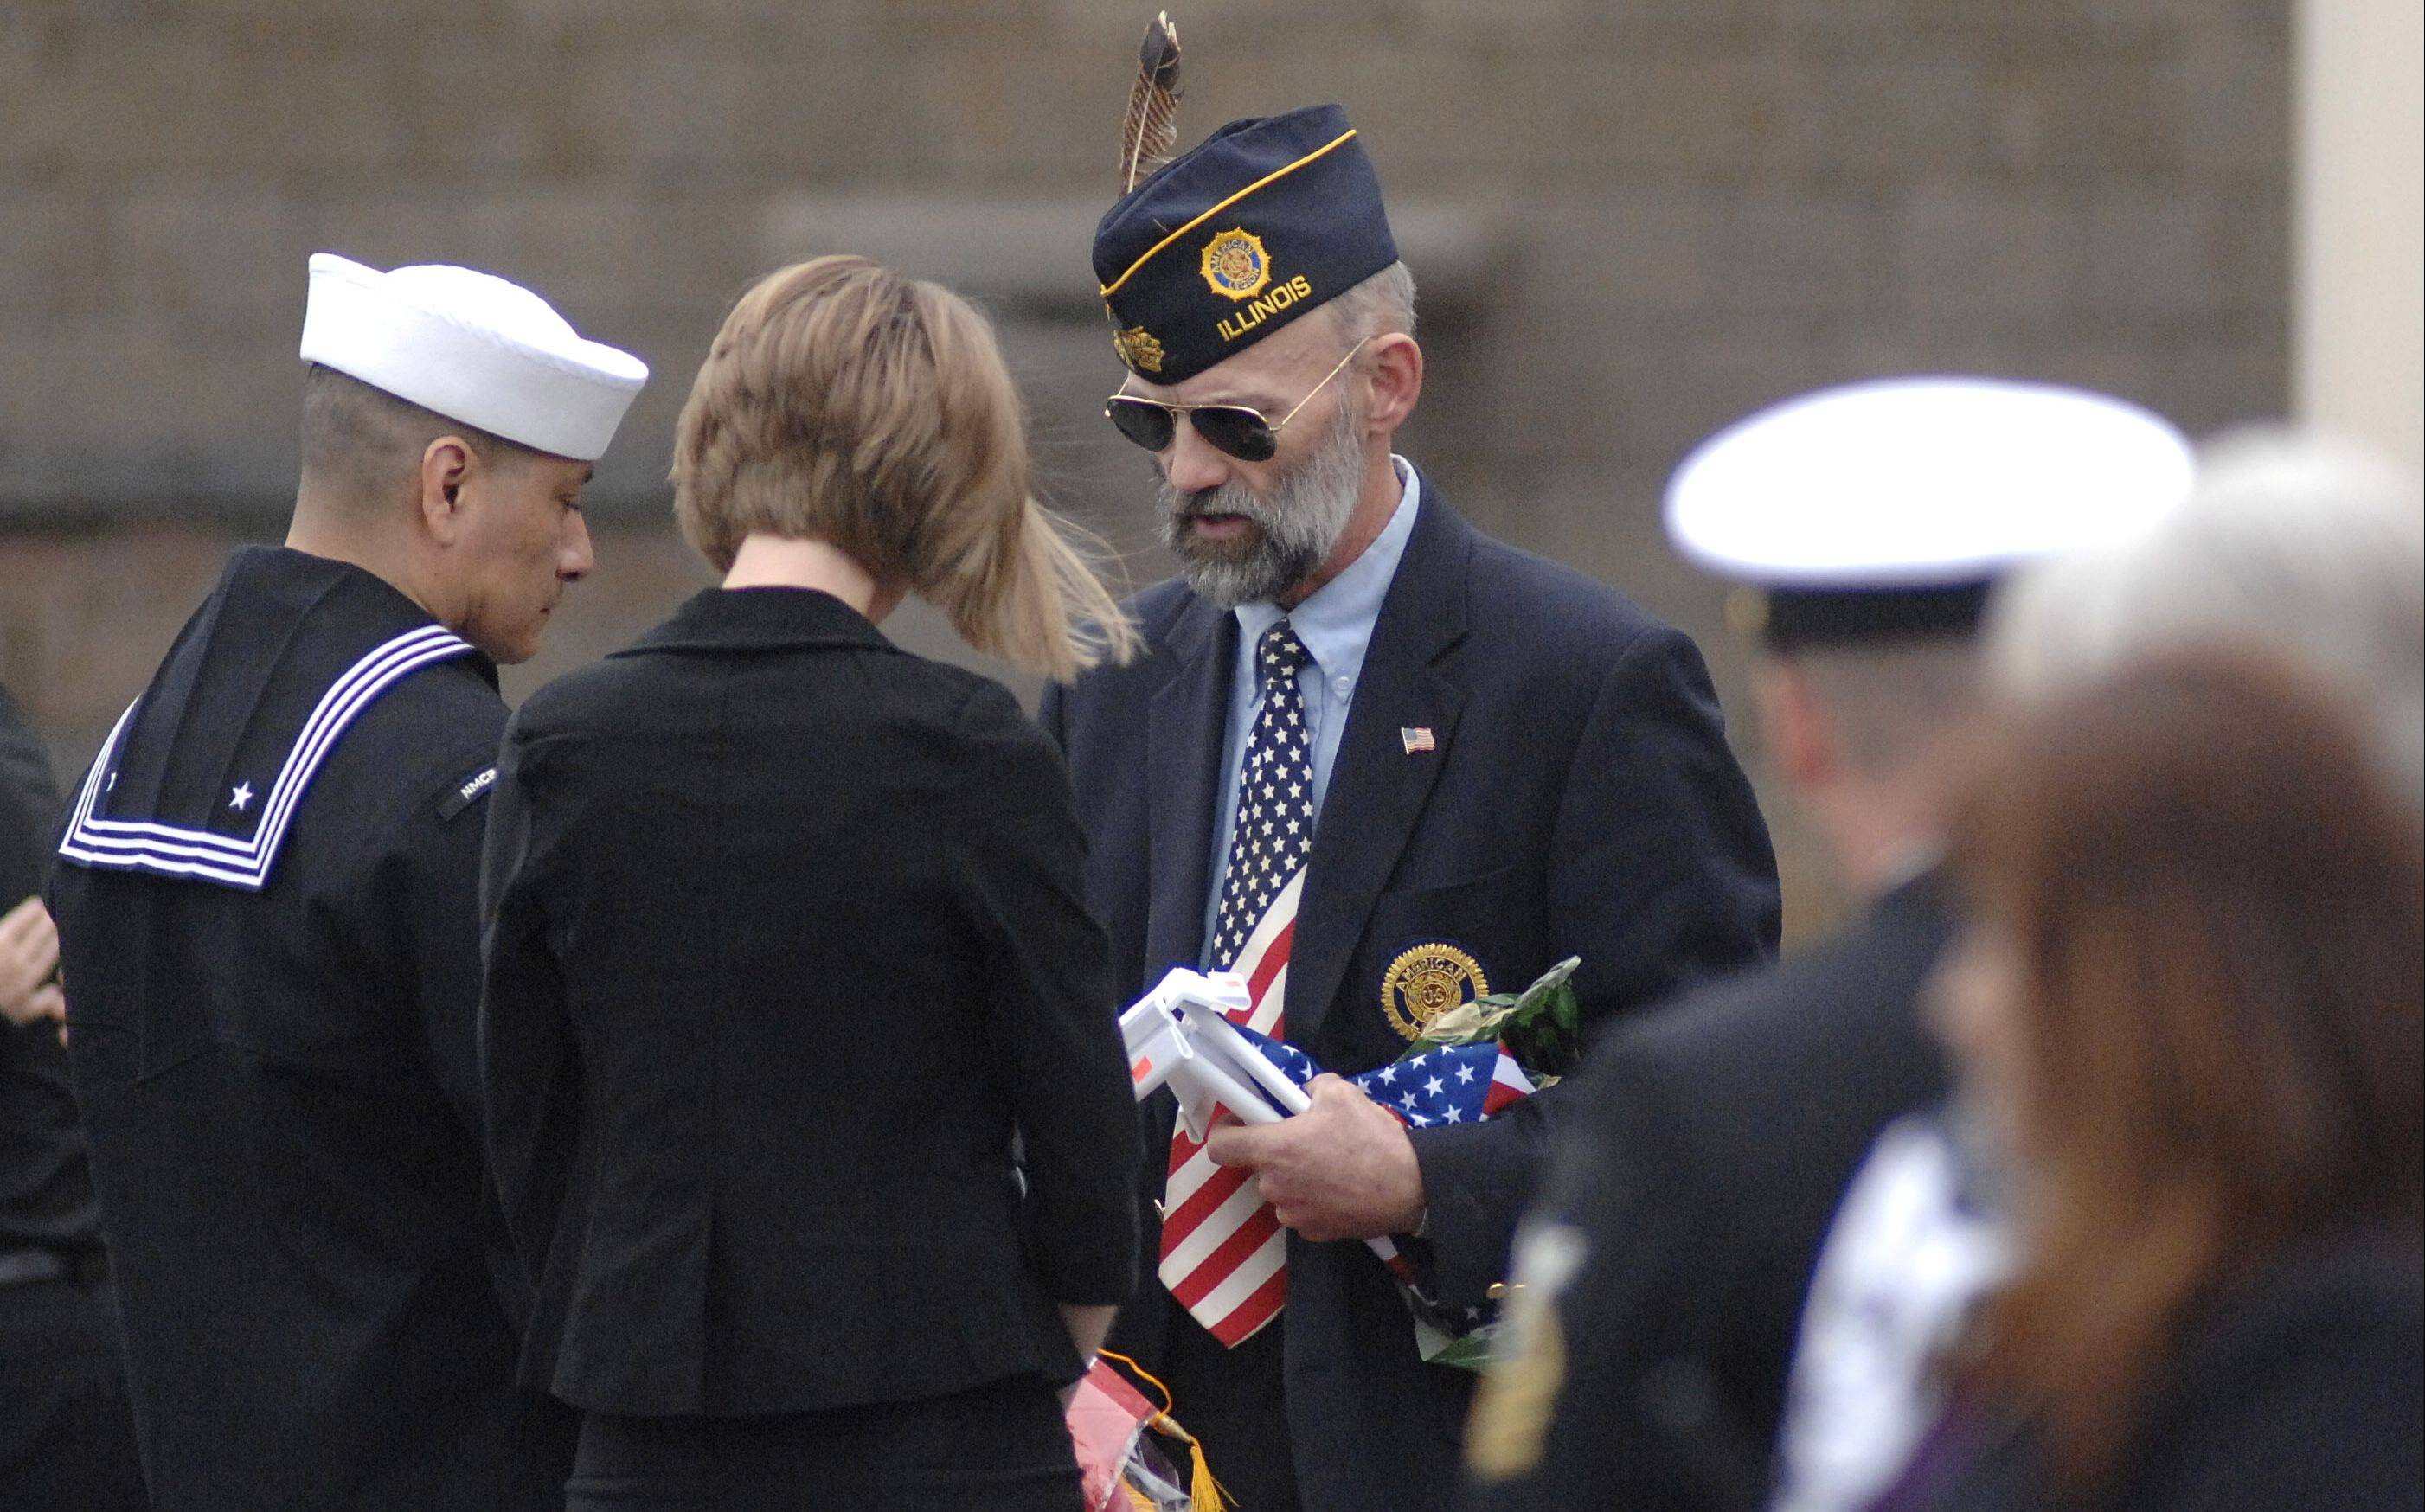 Enrique Martinez of Huntley, father of the late Cpl. Alex Martinez, is presented with flags and the golden star by a VFW member after Martinez's funeral on Saturday.